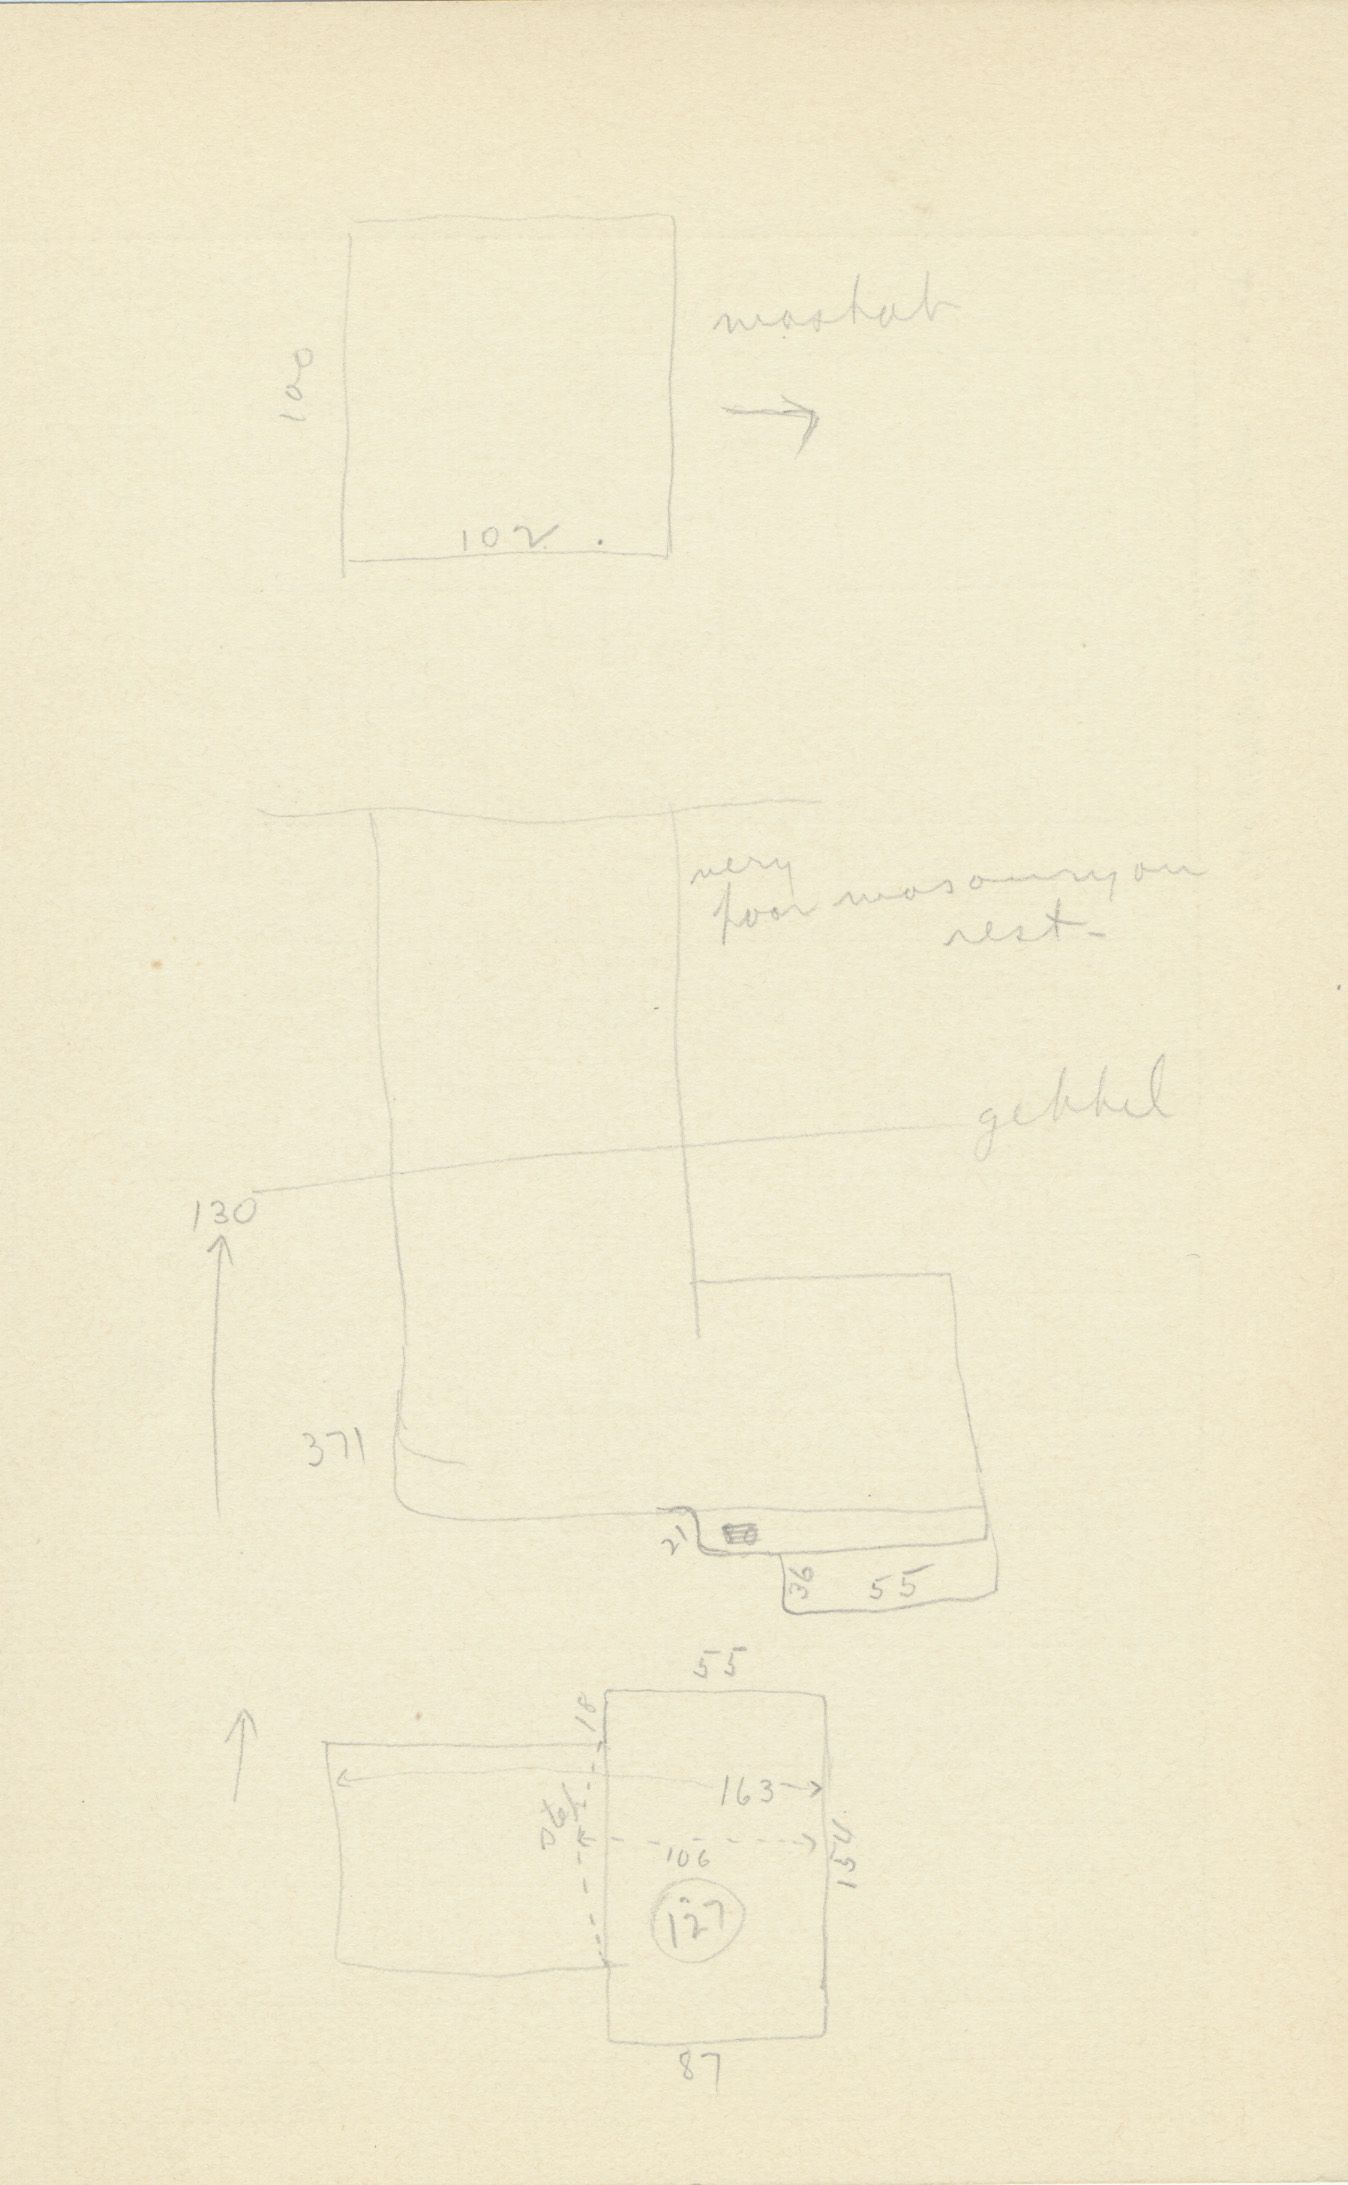 Maps and plans: G 2156', Shaft A, notes